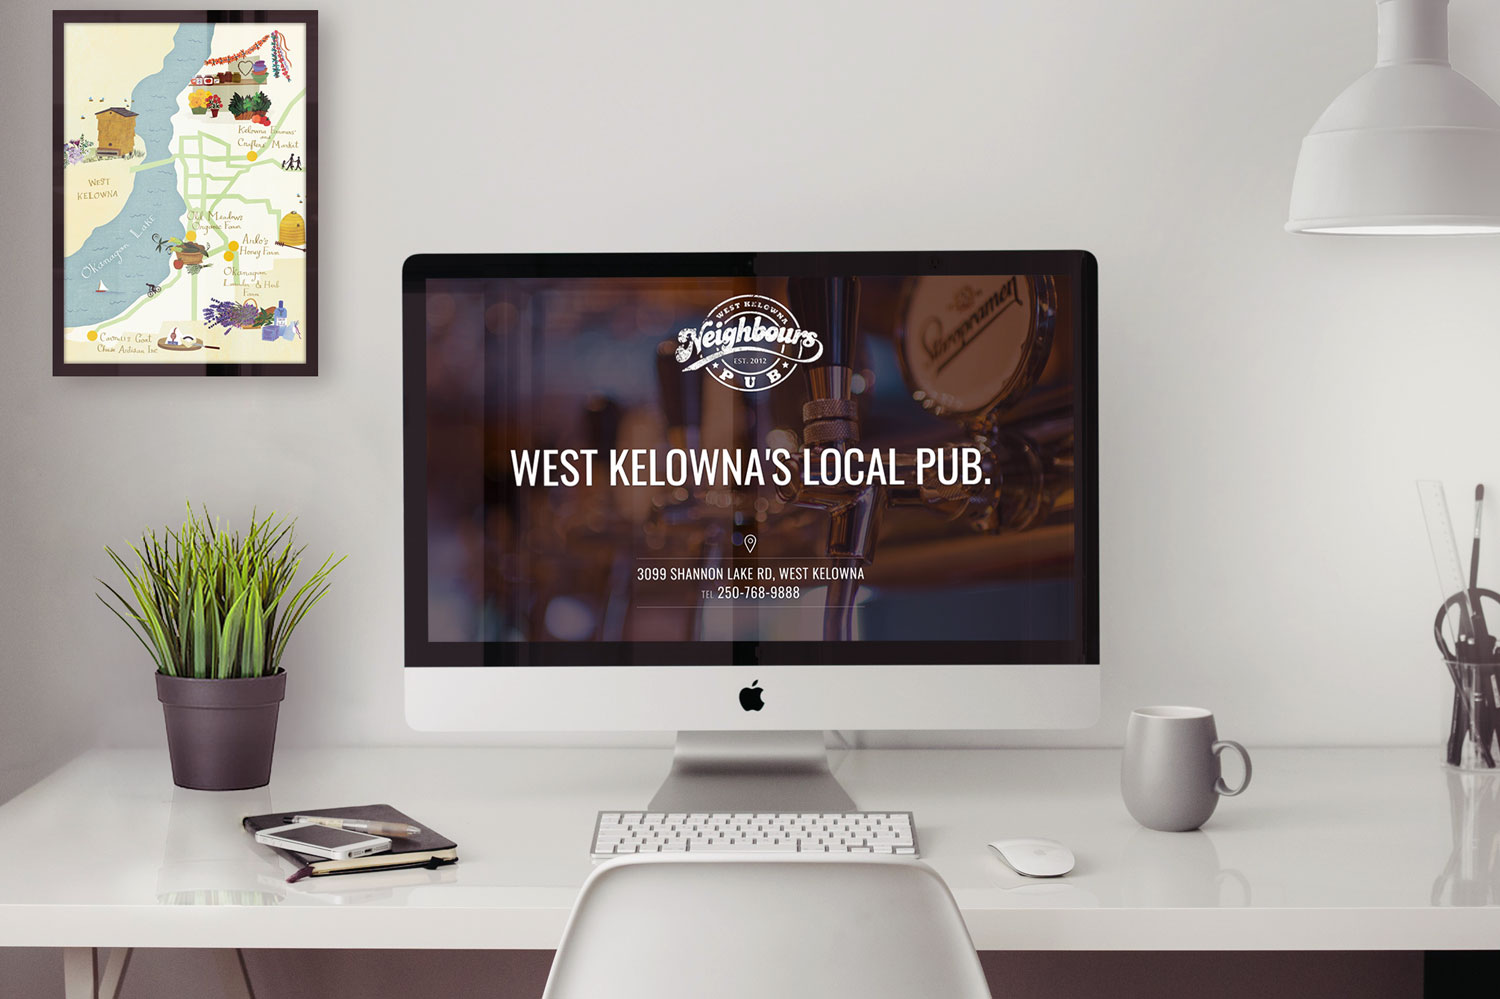 Neighbours-Pub-Kelowna-Website-Design